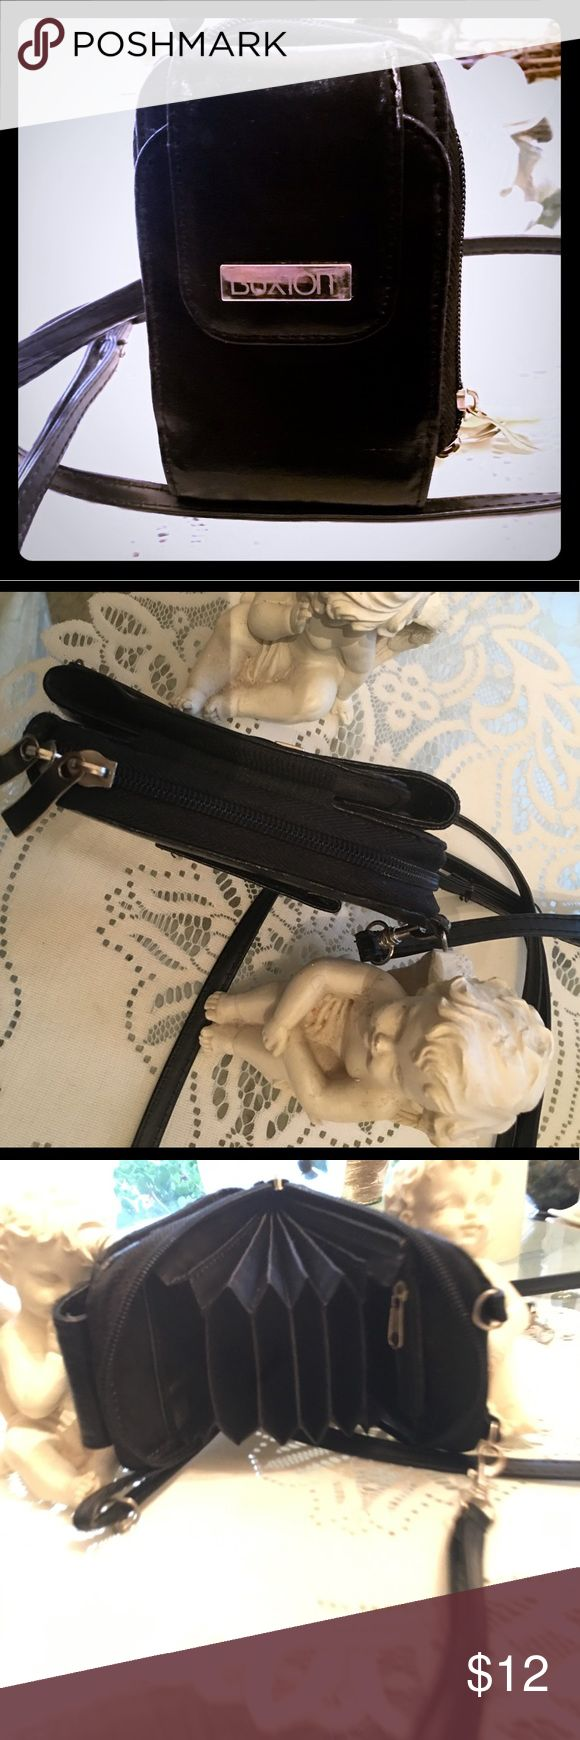 LADIES CROSS BODY STRAP BUXTON OR WRISTLET WALLET Cute and organized - BUXTON wallet great condition- has the wristlet strap and a strap for cross body - this is a great wallet ! Good condition Buxton Accessories